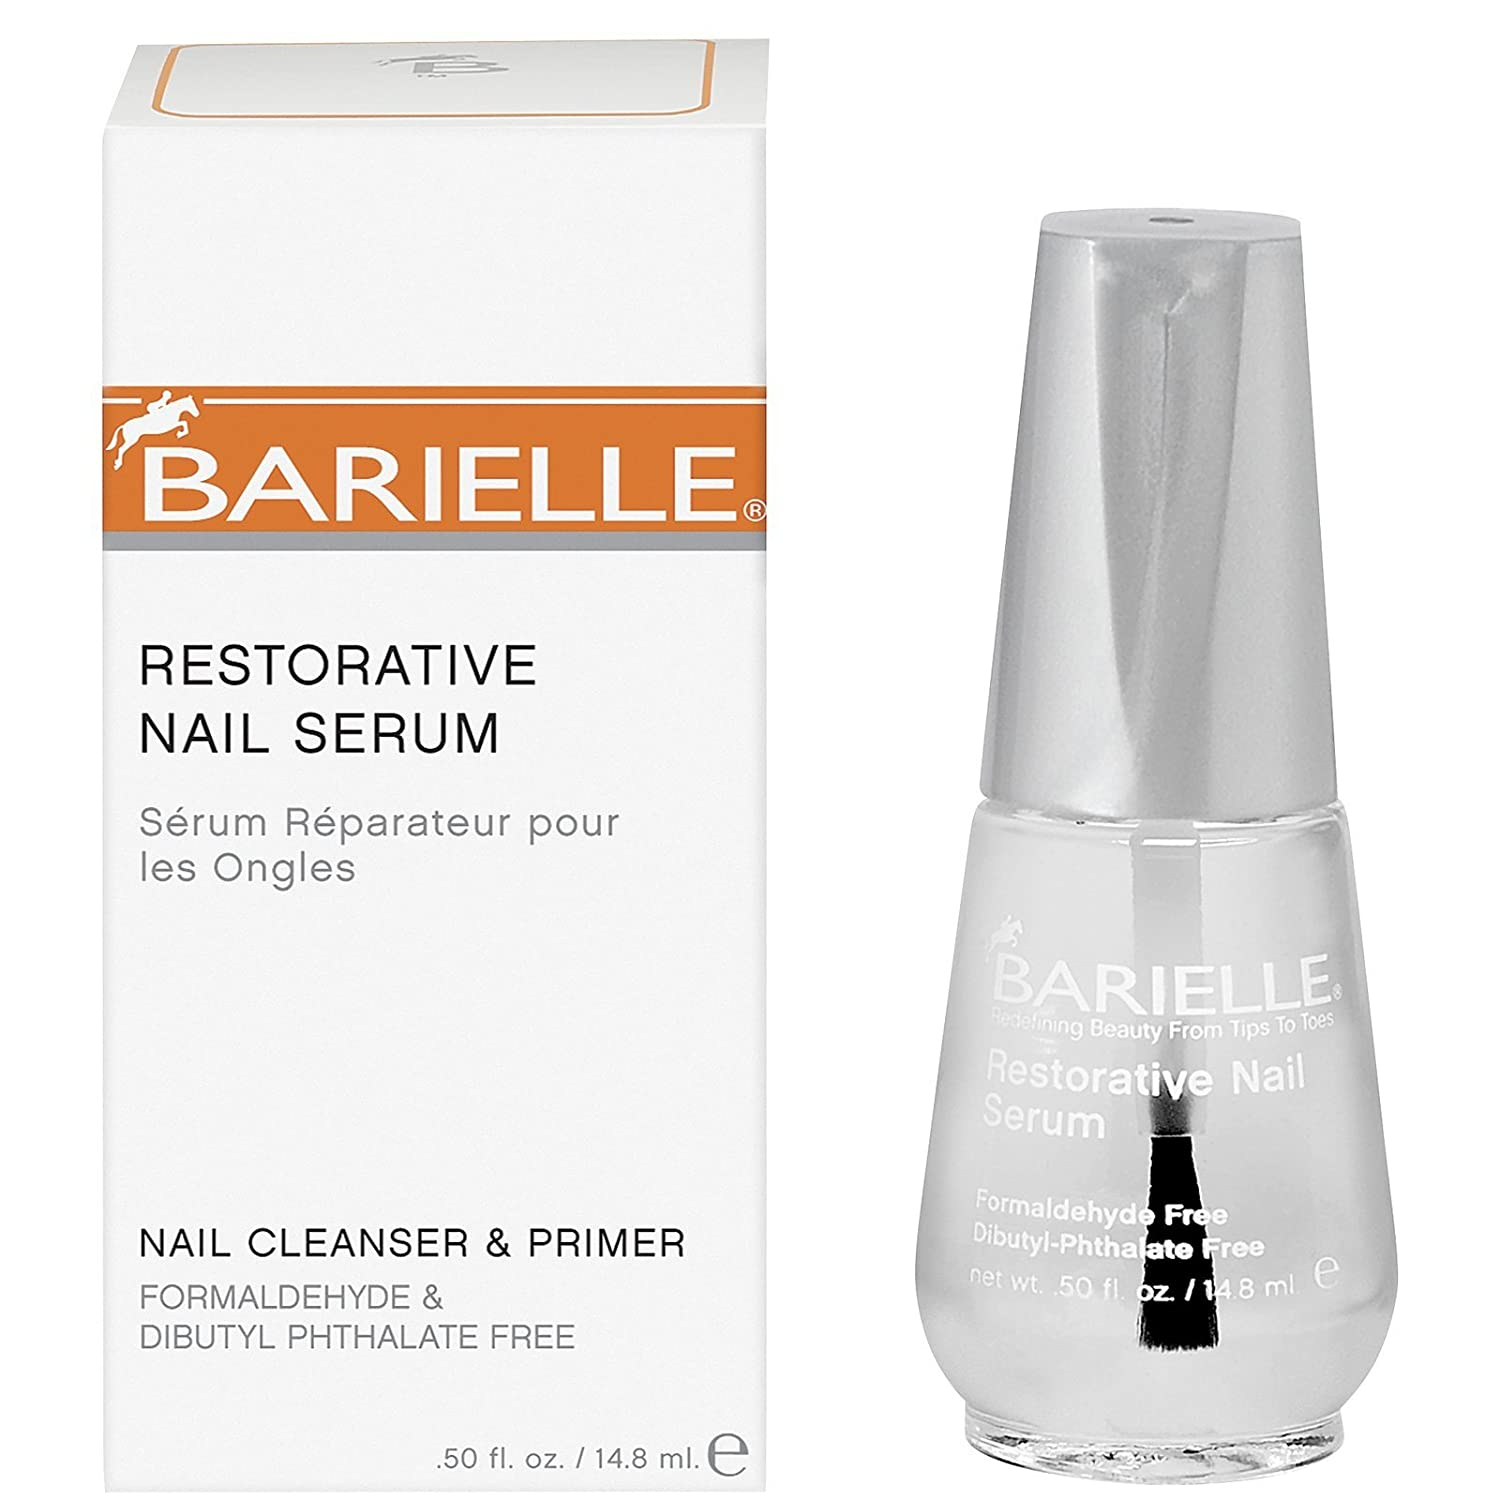 Barielle Restorative Nail Serum 14.8 ml Fisk Industries Inc.